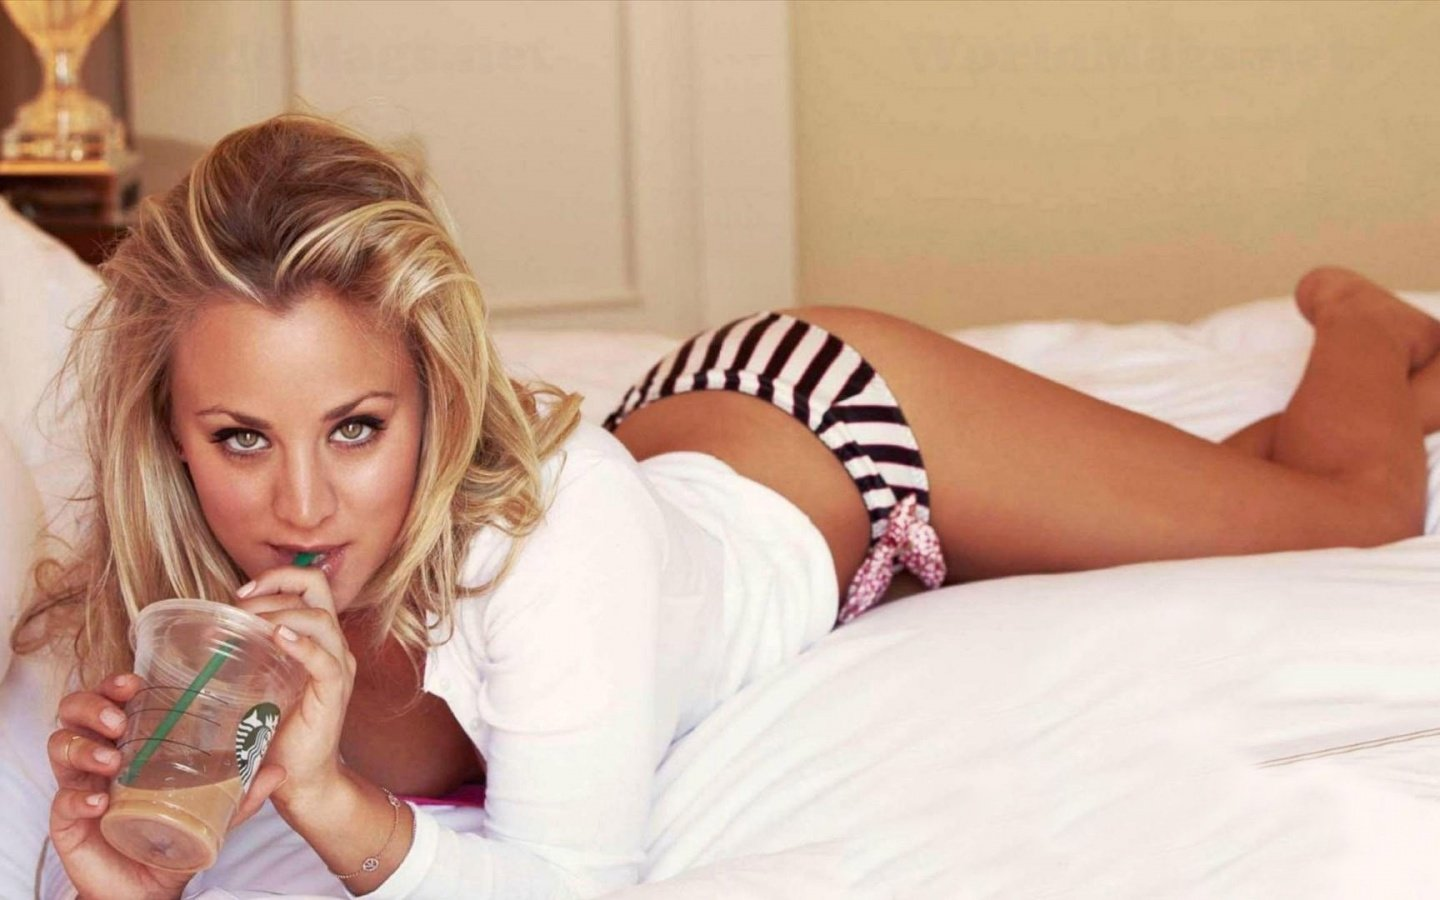 Free download Kaley Cuoco background ID:130052 hd 1440x900 for PC